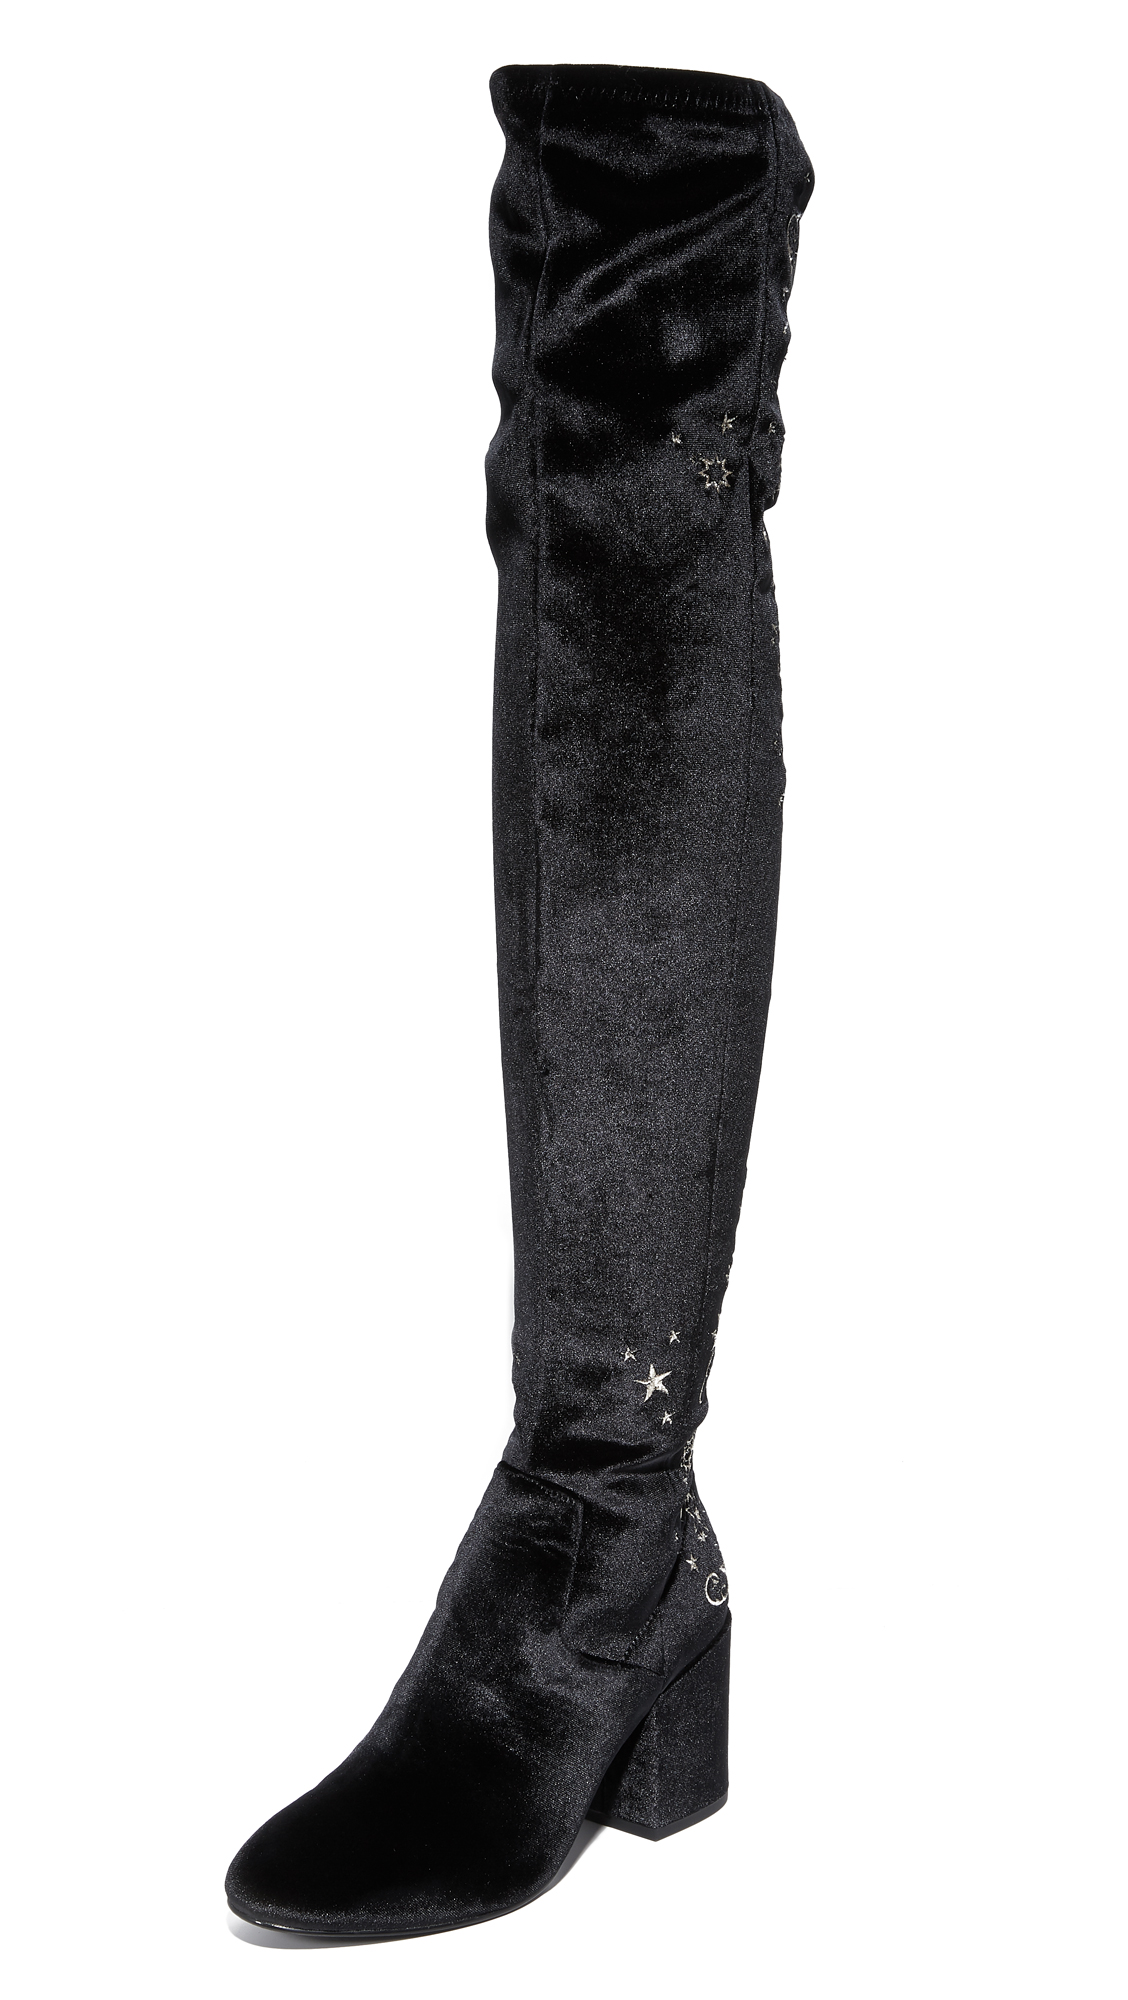 Ash Eros Over the Knee Boots - Black